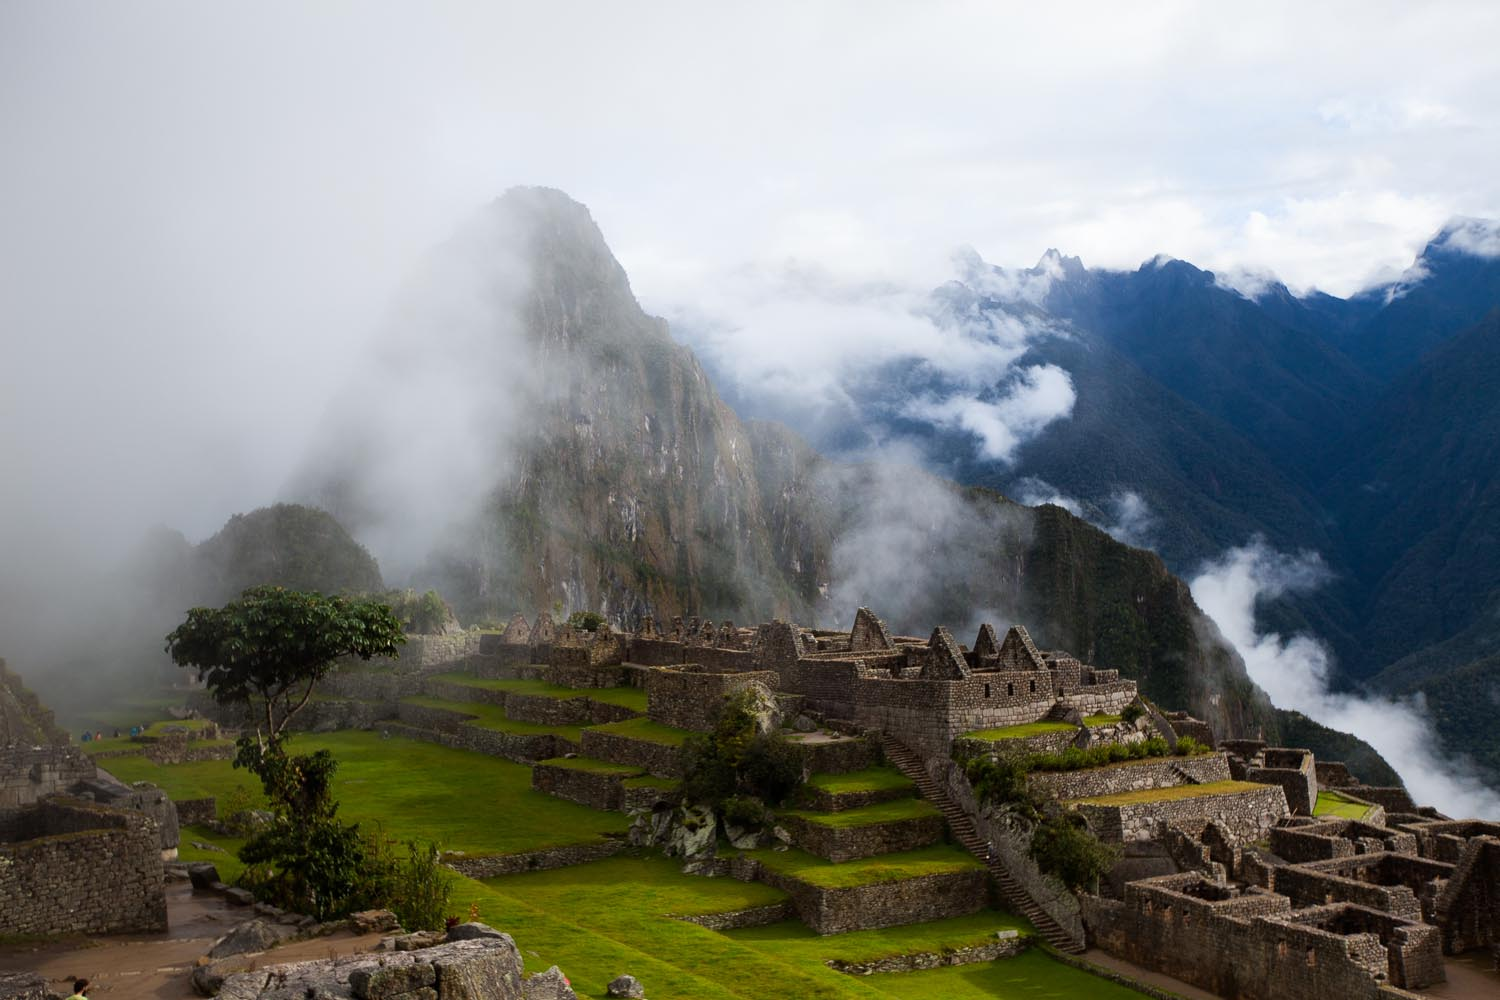 Morning view before the clouds parted: Machu Picchu, Perú